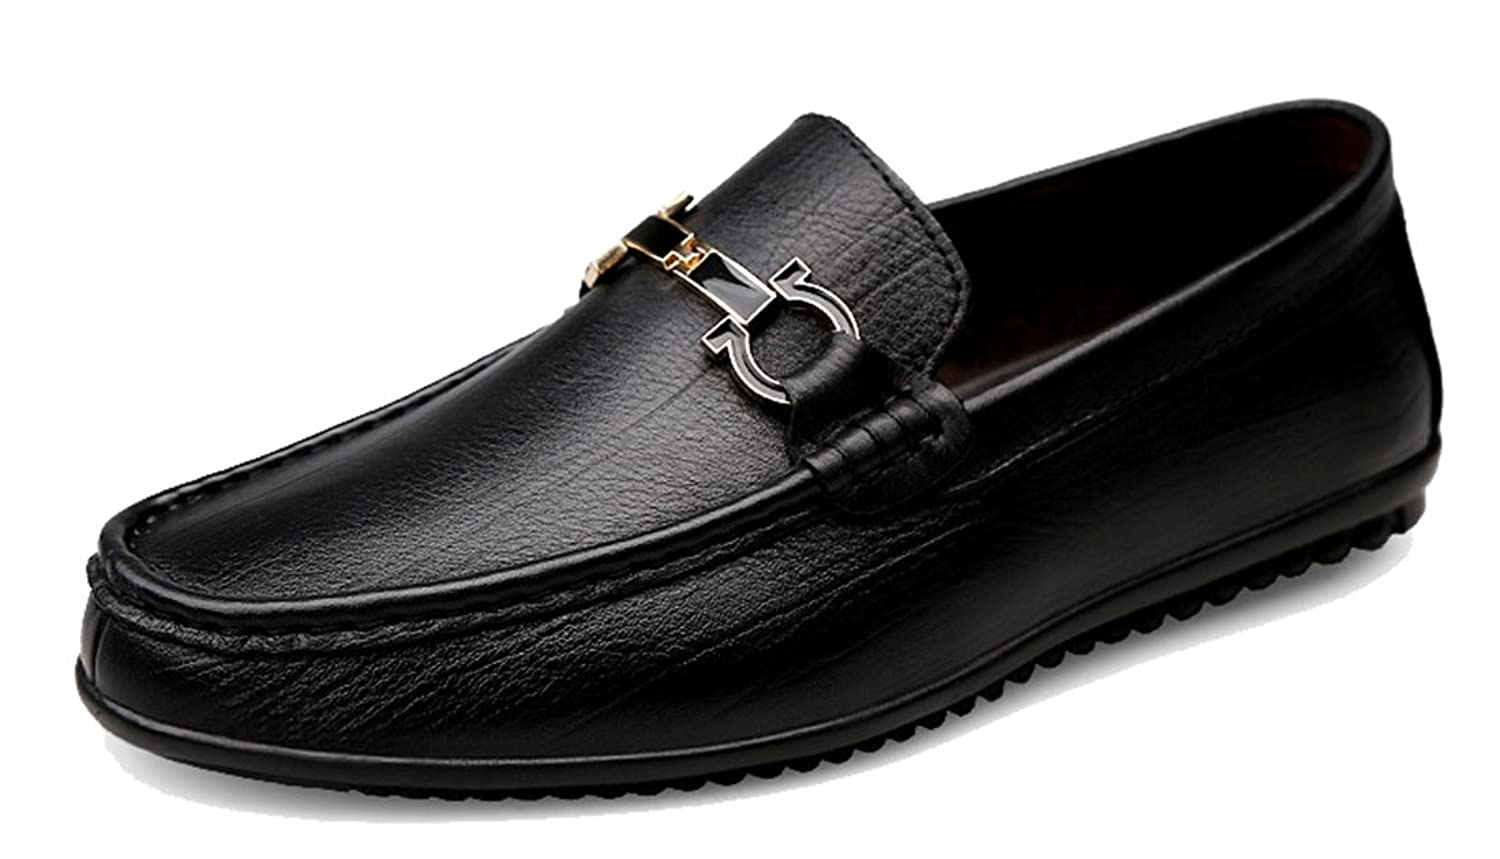 Men's Casual Comfort Leather Fashion Walking Hiking Loafers Driving Slip-On Shoes